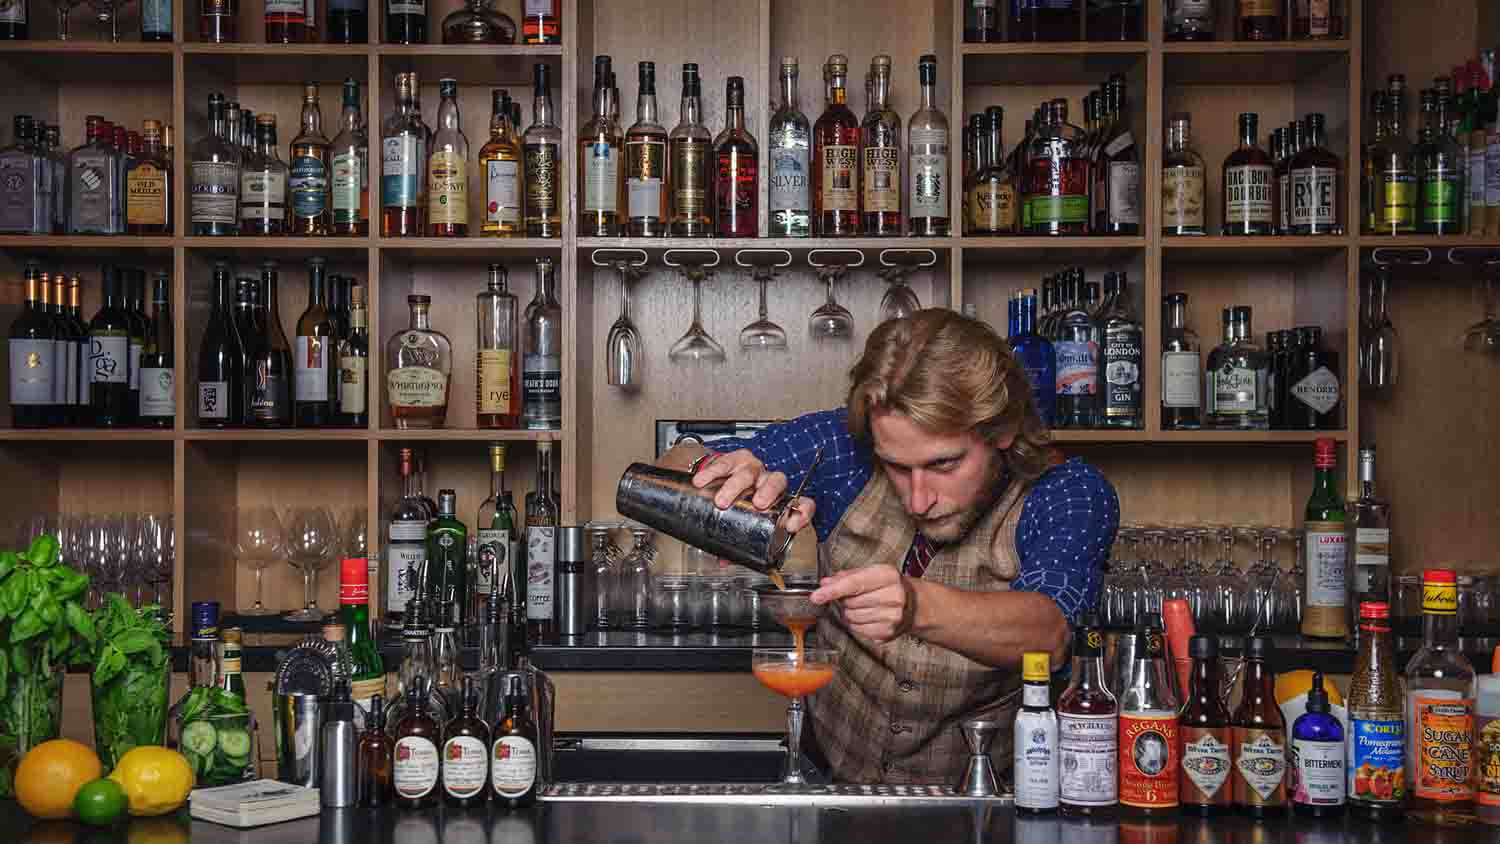 Libertine Liquor Bar